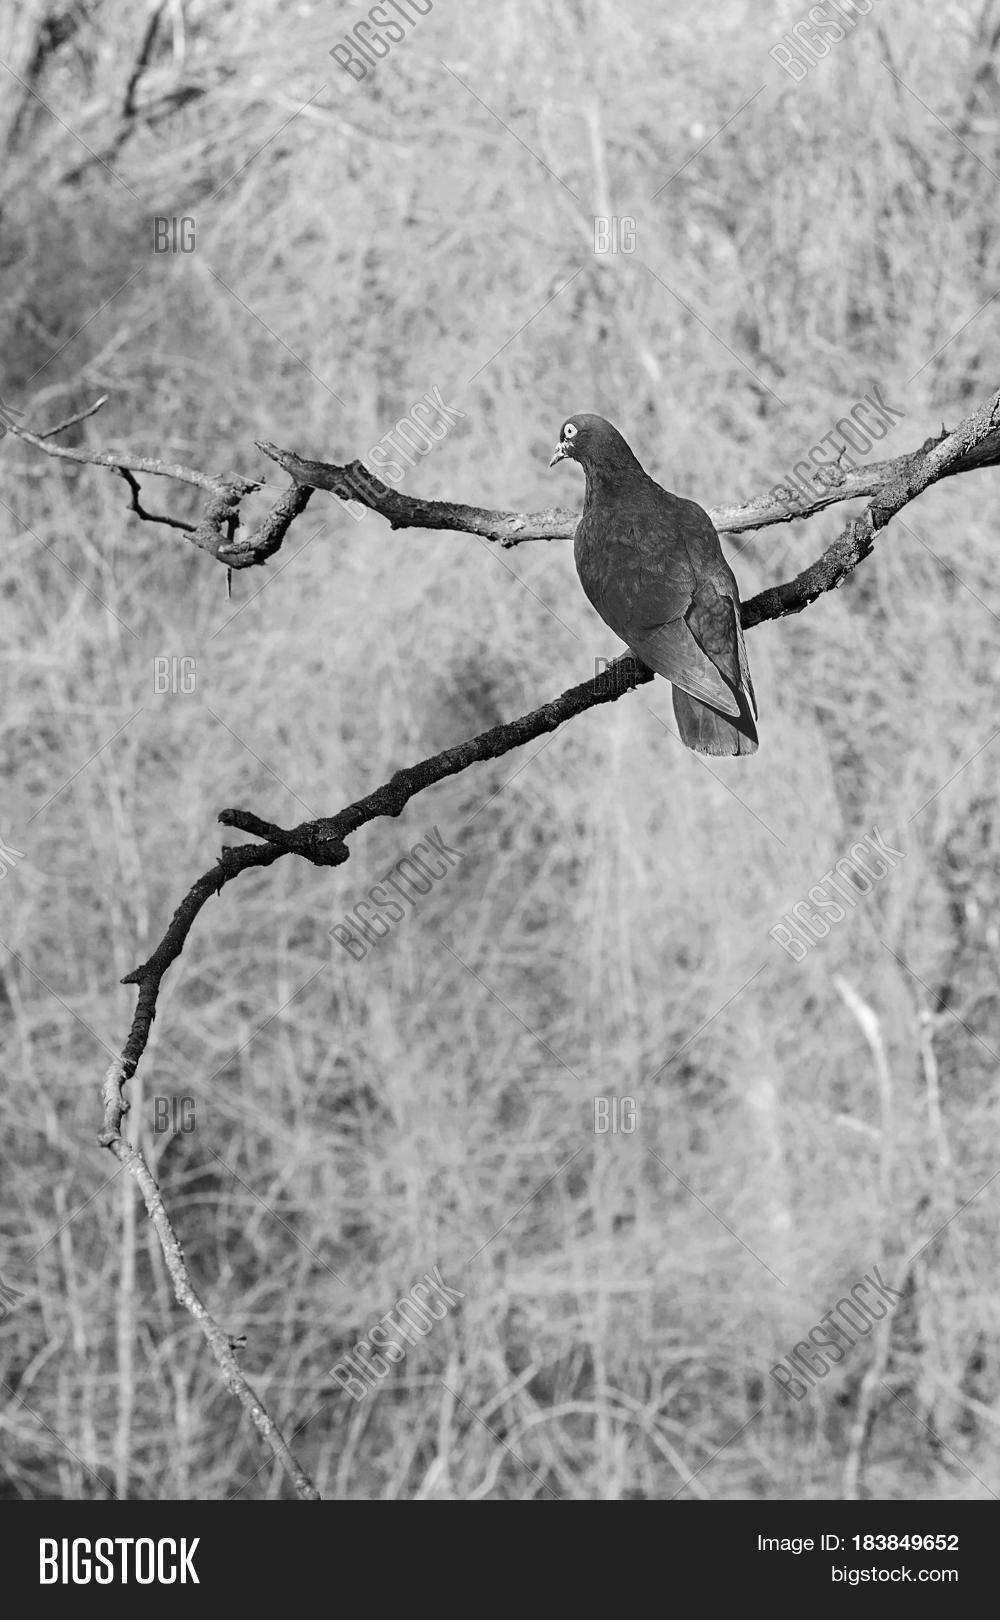 Appearance,Background,One,abandoned,animal,art,artistic,beak,bird,black,blue,branch,color,dark,dove,emptiness,feather,flight,free,gray,melancholy,nature,nobody,outdoors,poetic,portrait,romantic,sky,tree,unique,unpainted,white,wing